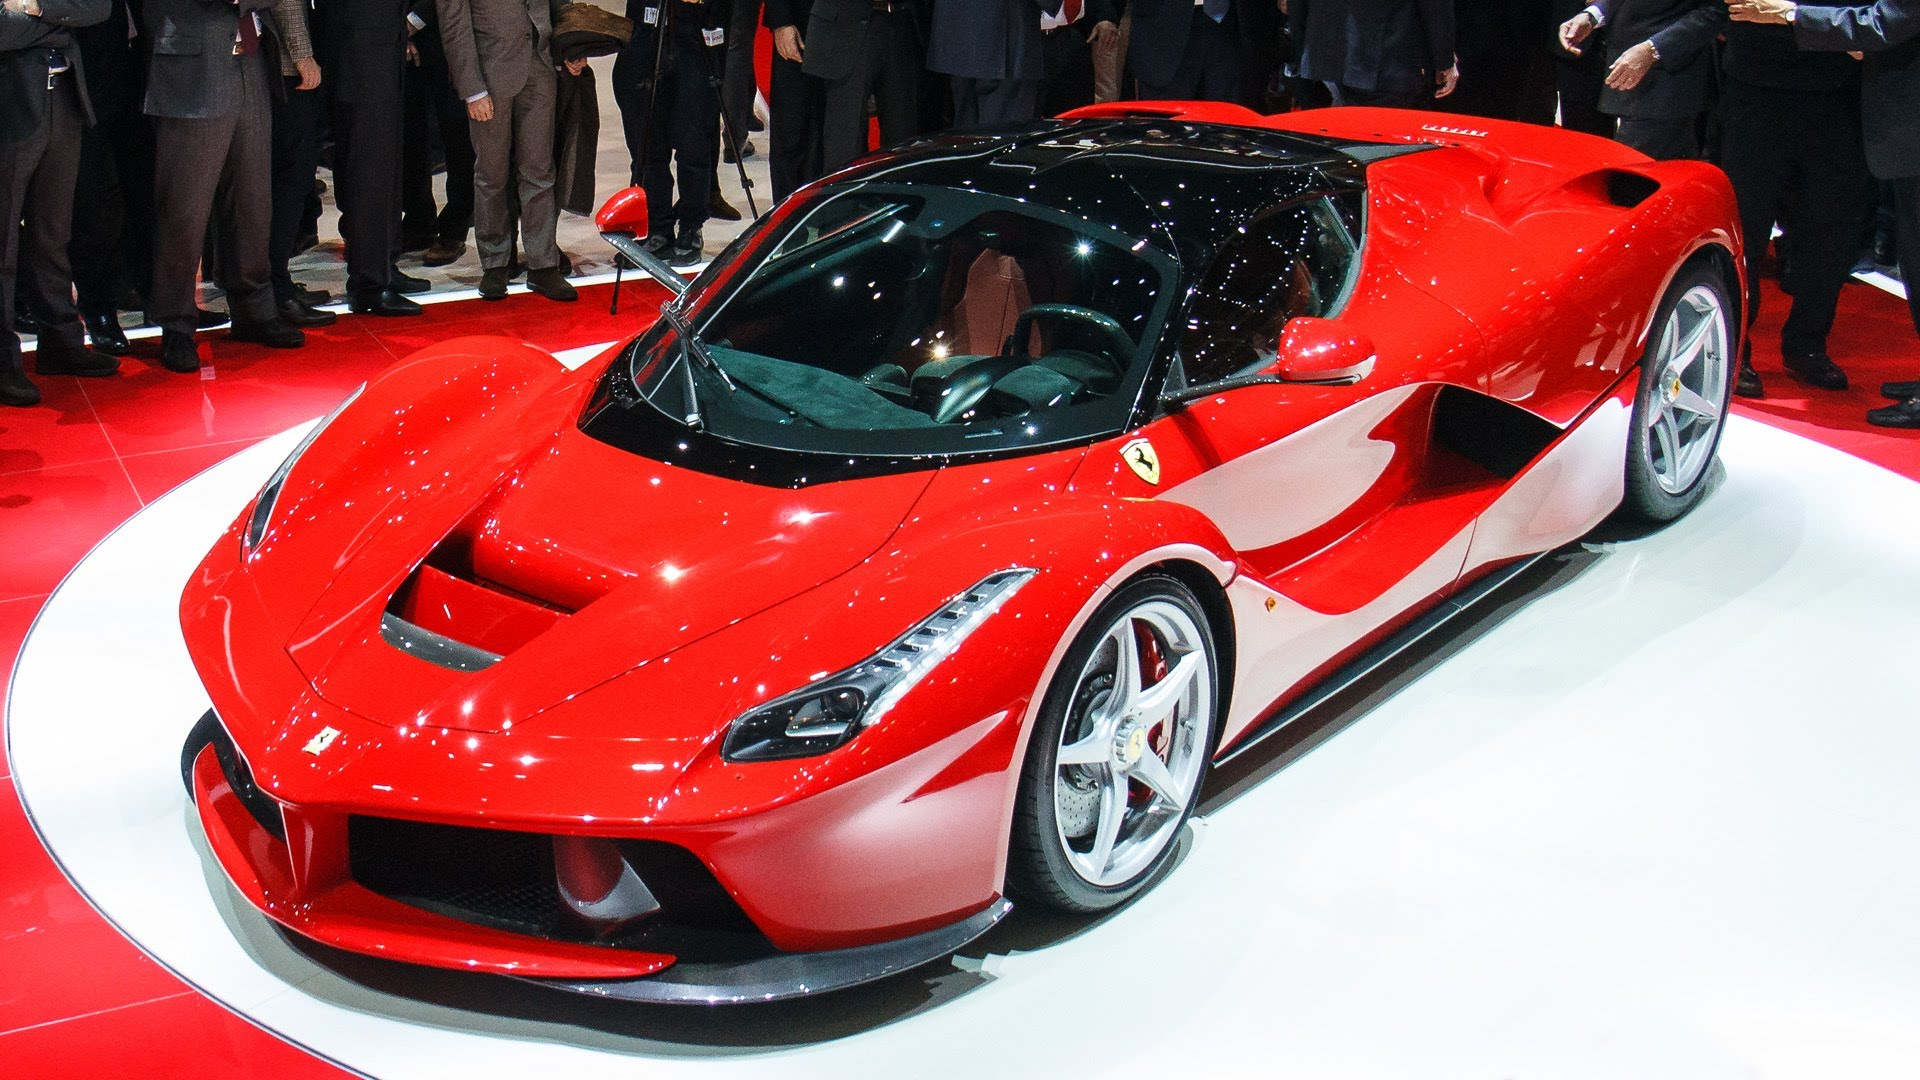 Ferrari Builds One More LaFerrari to Benefit Earthquake Victims